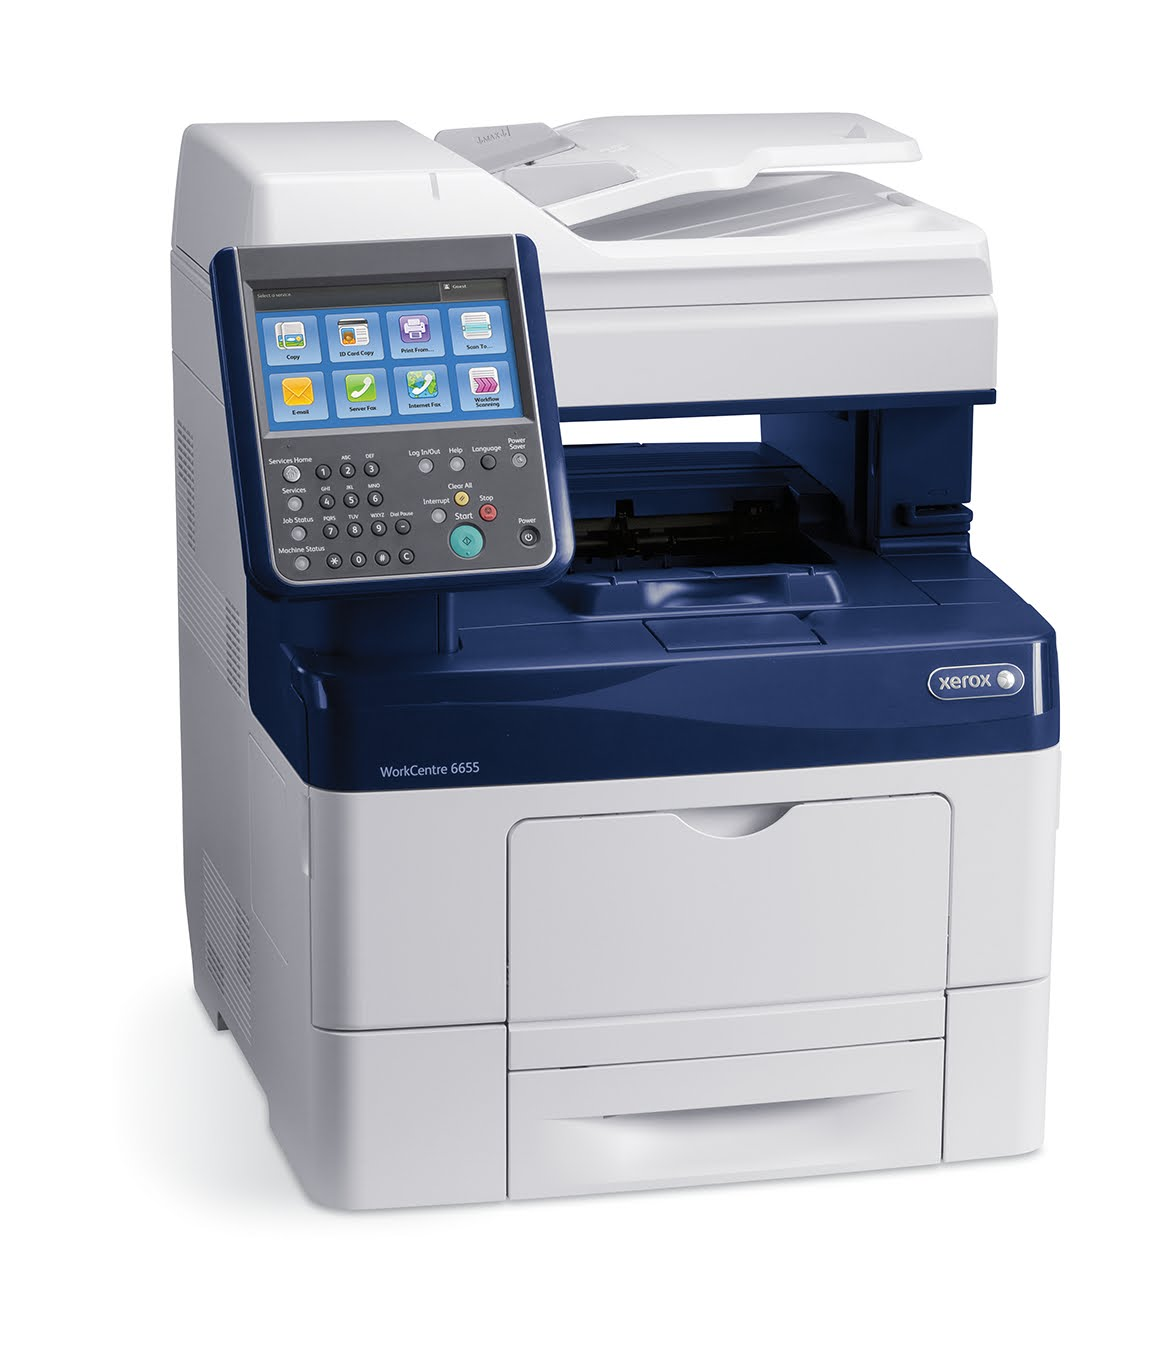 Xerox WorkCentre-6655 printer